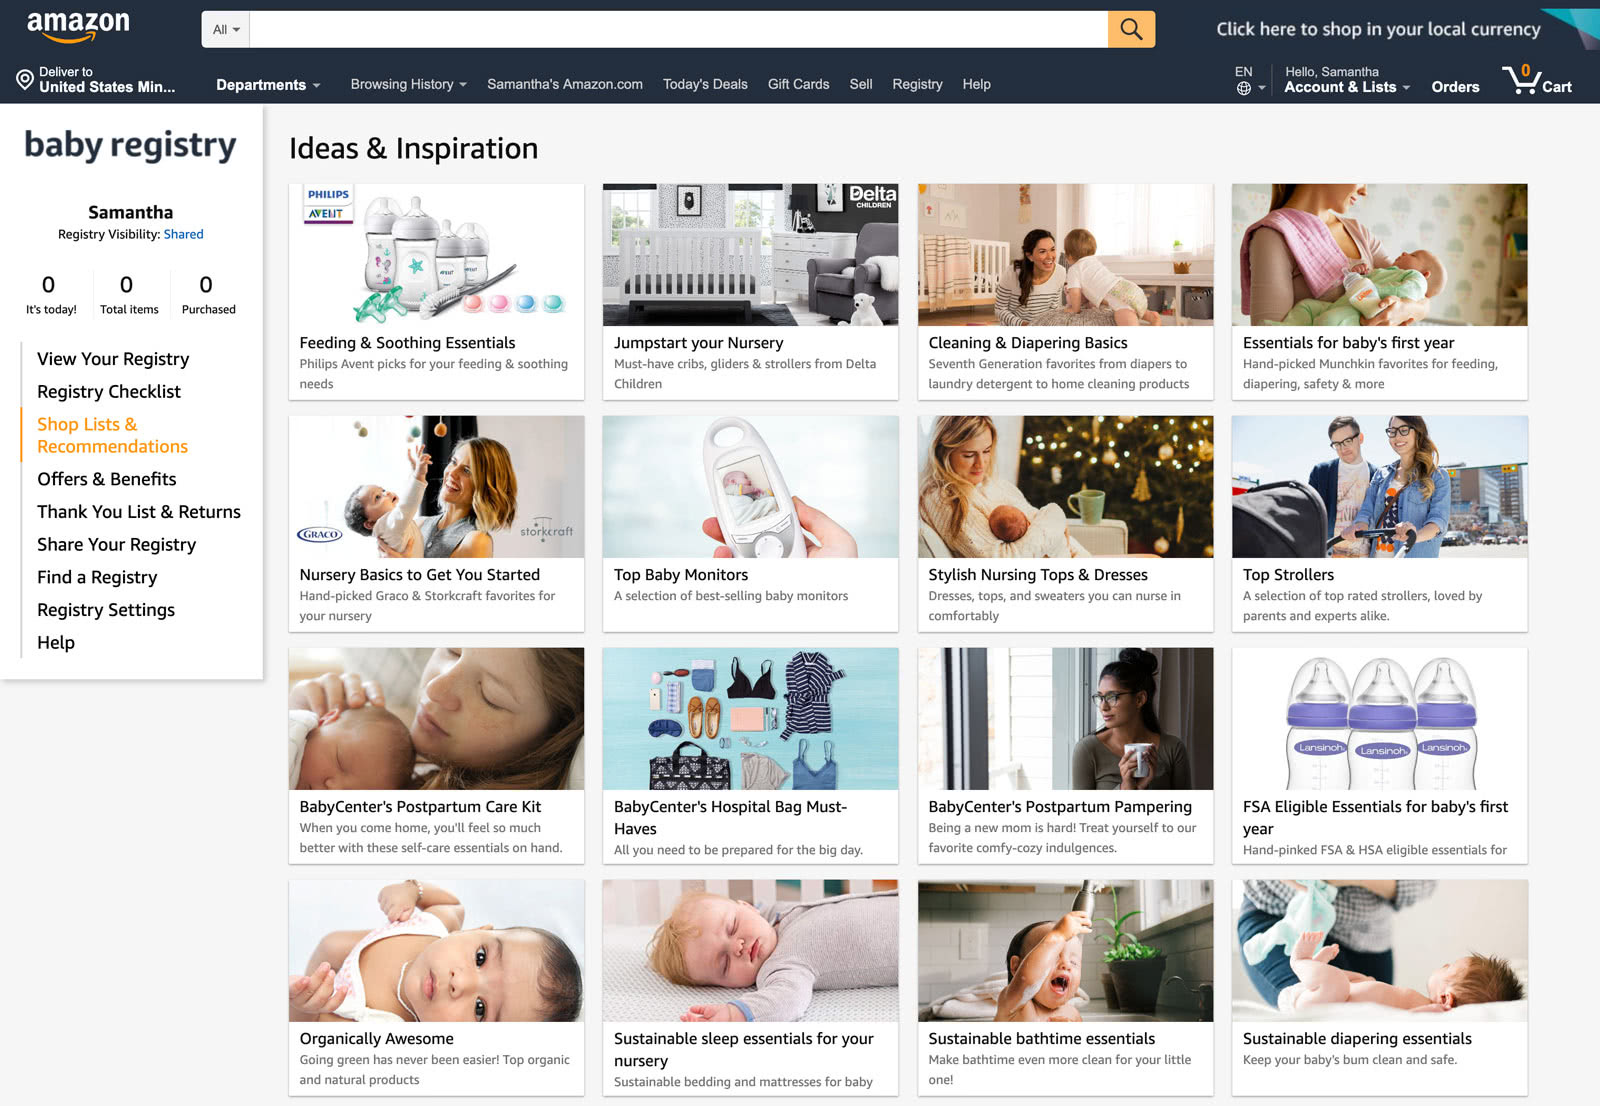 Amazon Baby Registry guide - checklist ideas and inspirations Step 3 - Baby Gear Essentials